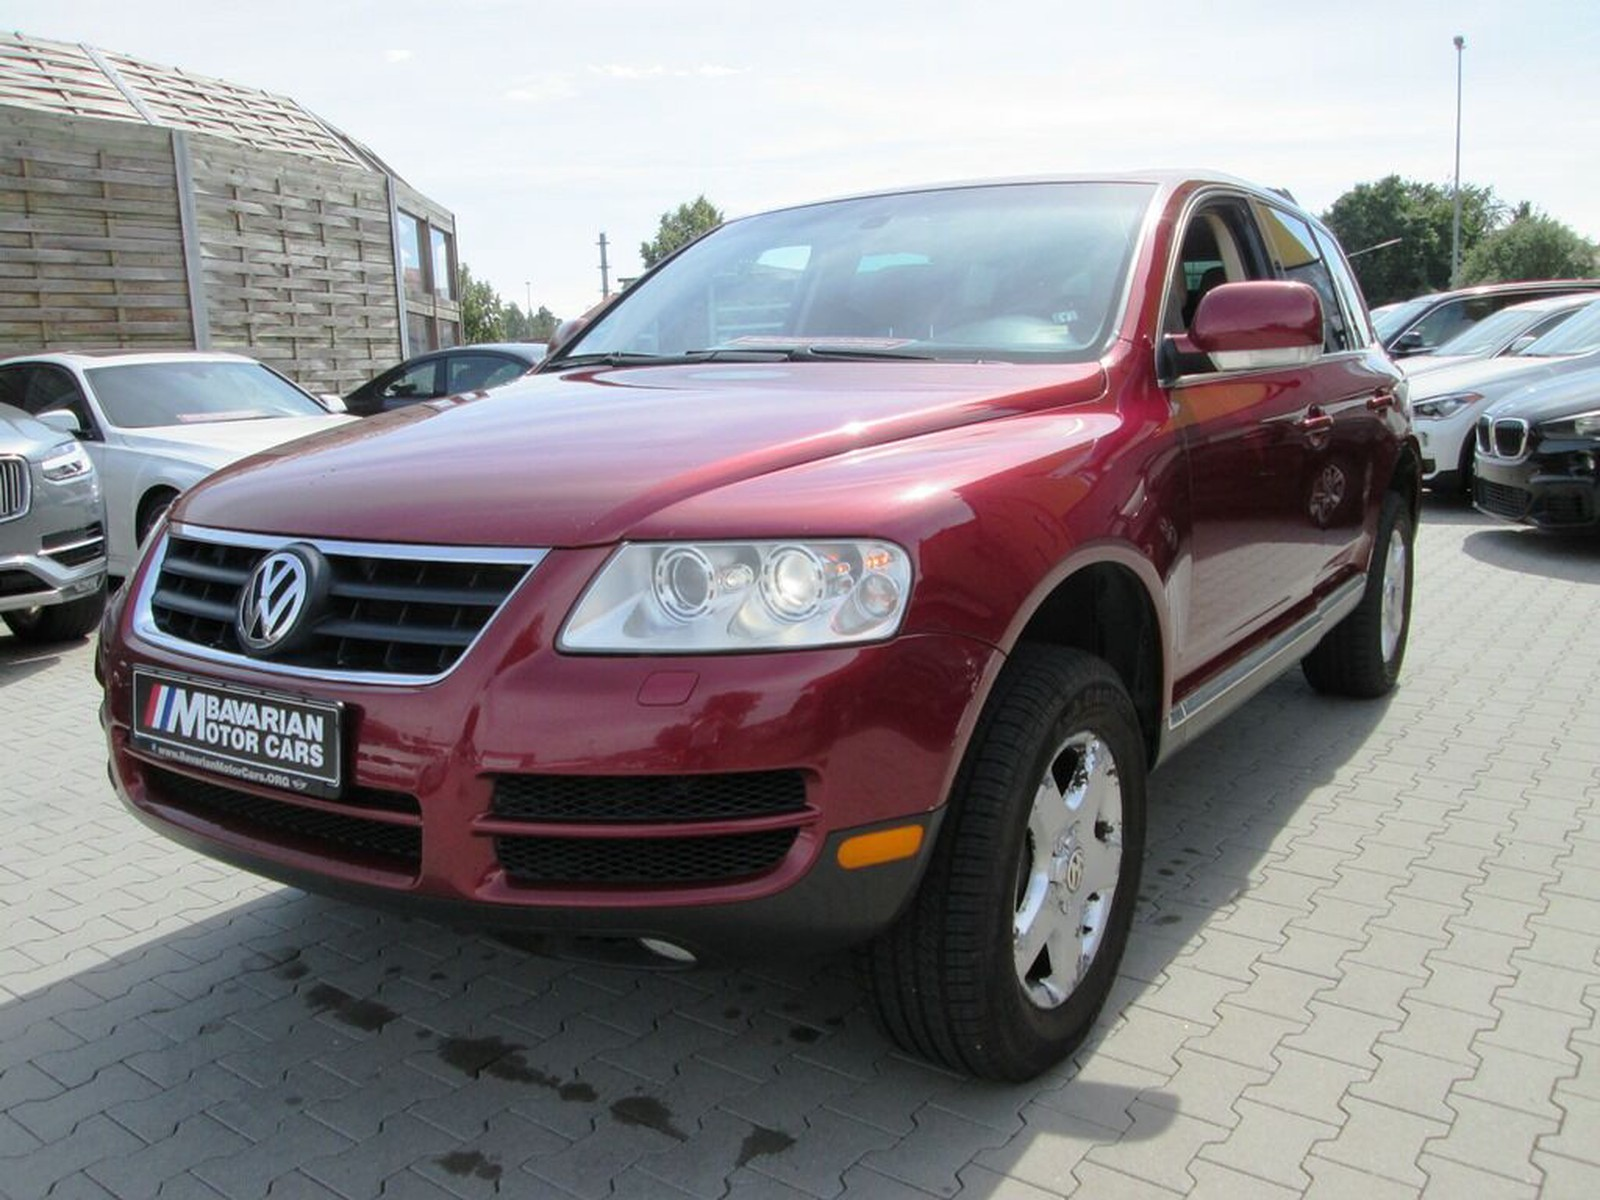 Volkswagen Touareg Sport Utility 4d Tax Free Military Sales In Wurzburg Price 3995 Eur Int Nr U 14653 Sold